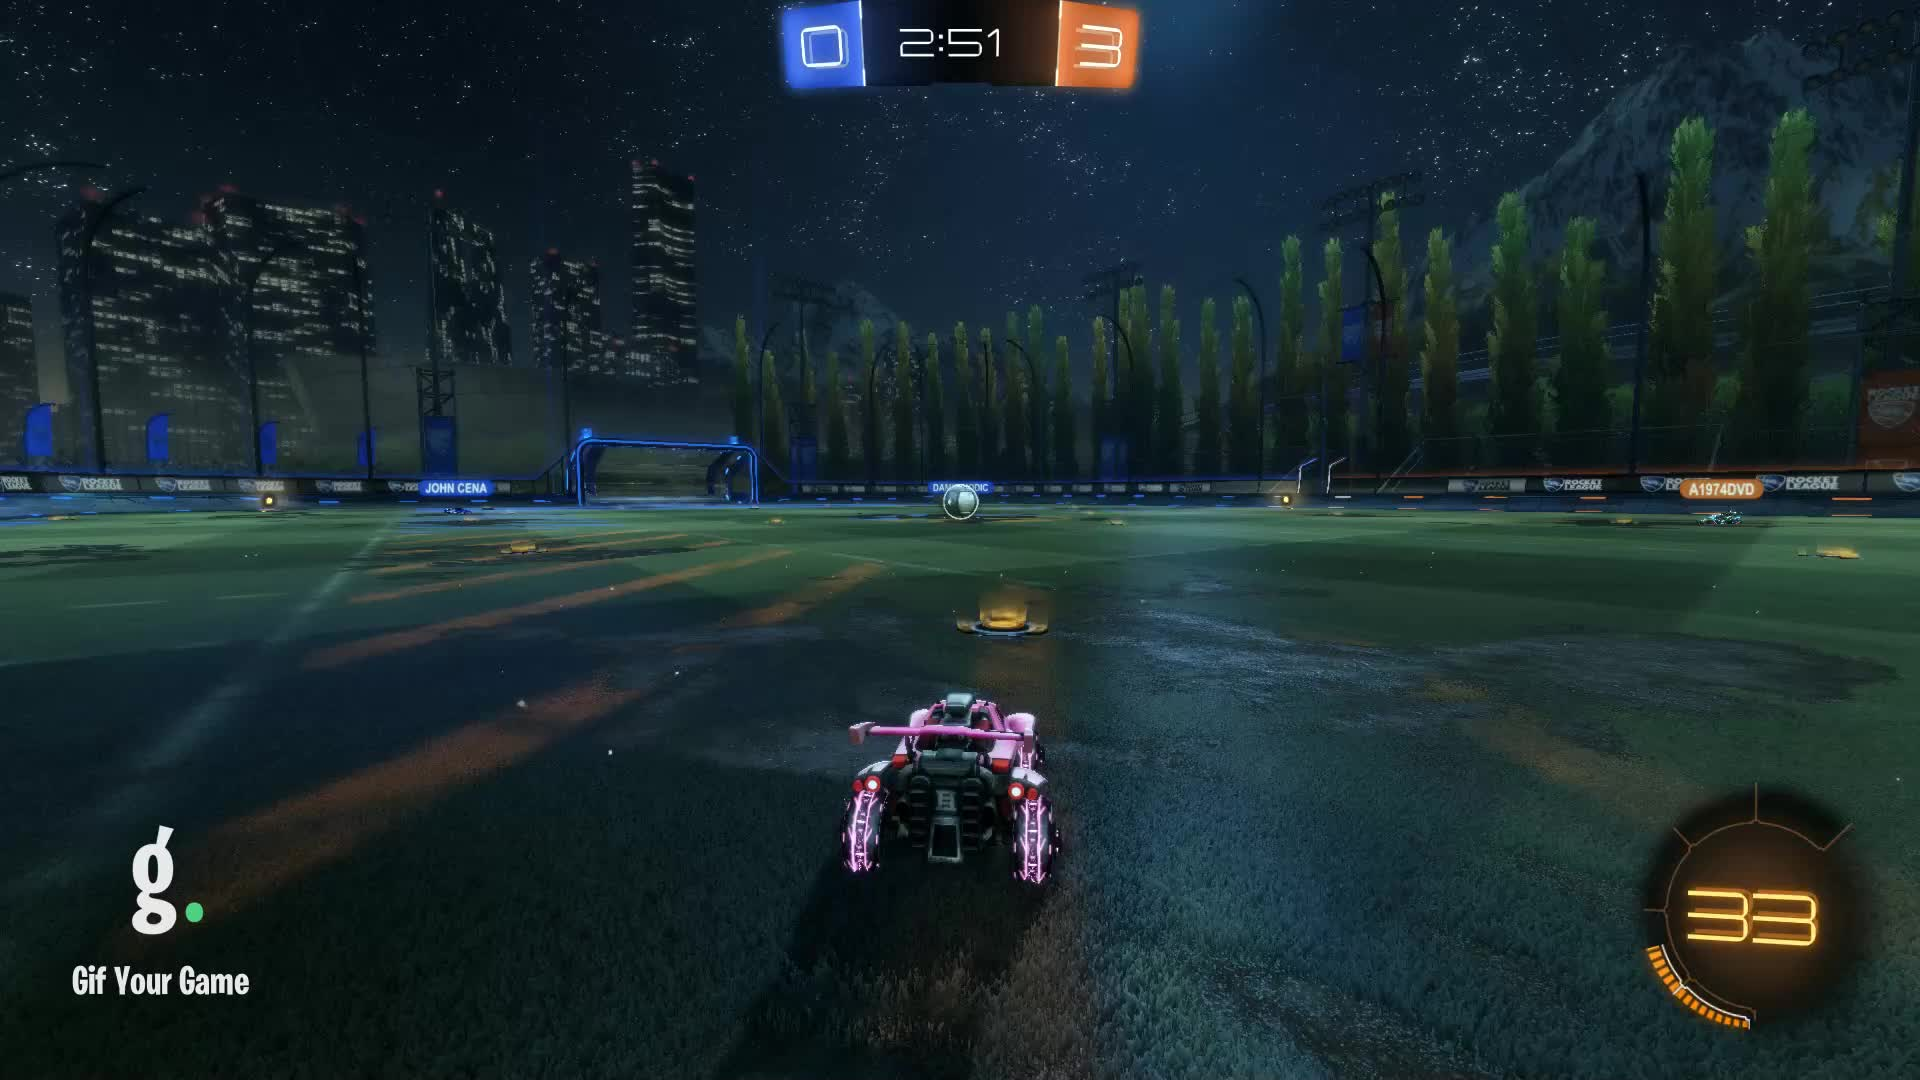 Gif Your Game, GifYourGame, Goal, Rocket League, RocketLeague, Sygnosis, Bloop GIFs